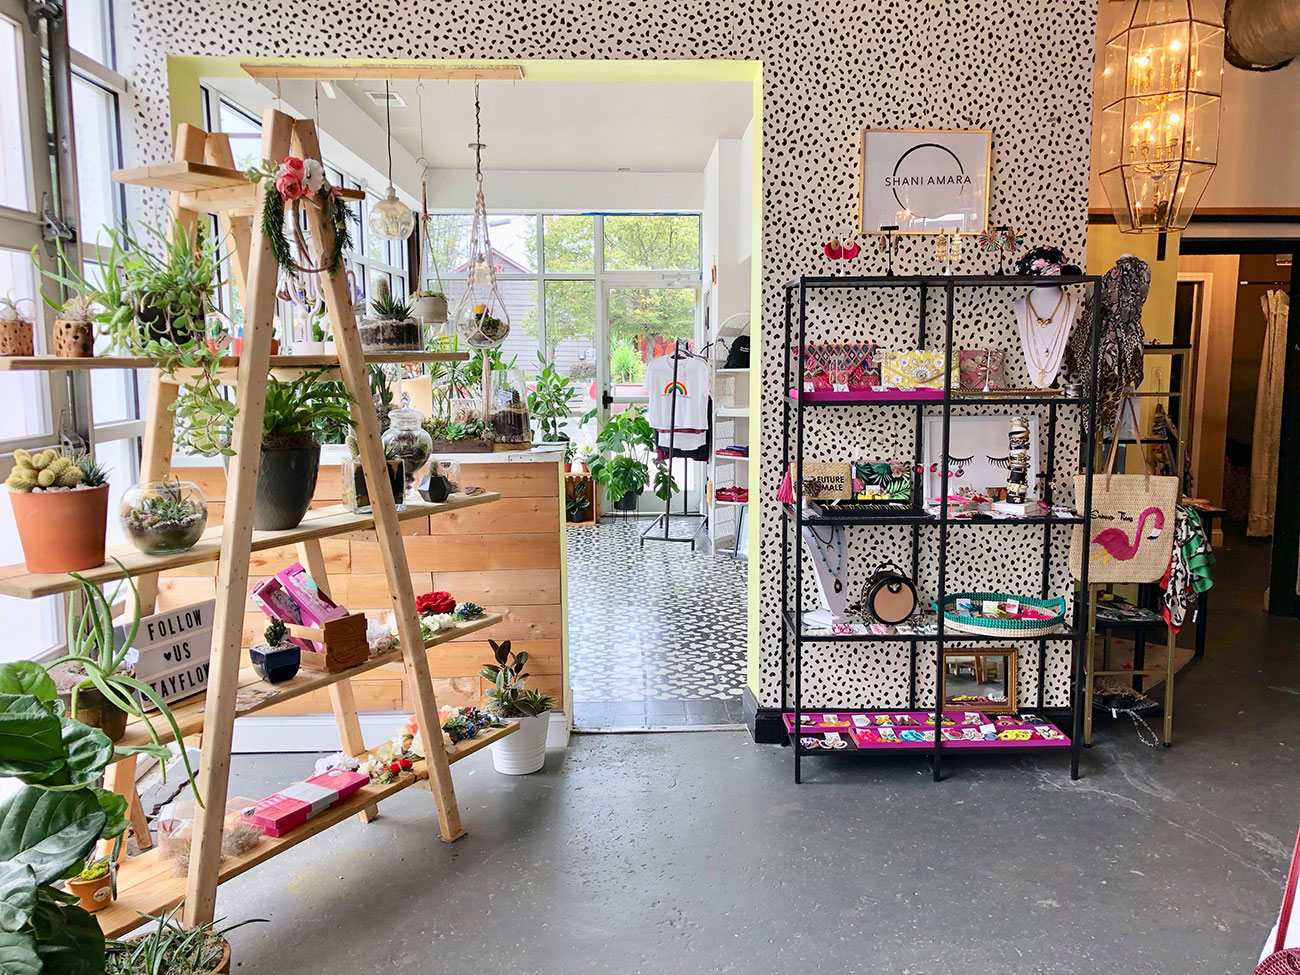 More than a dozen local brands have joined forces to open a multi-vendor retail marketplace in Plaza Midwood